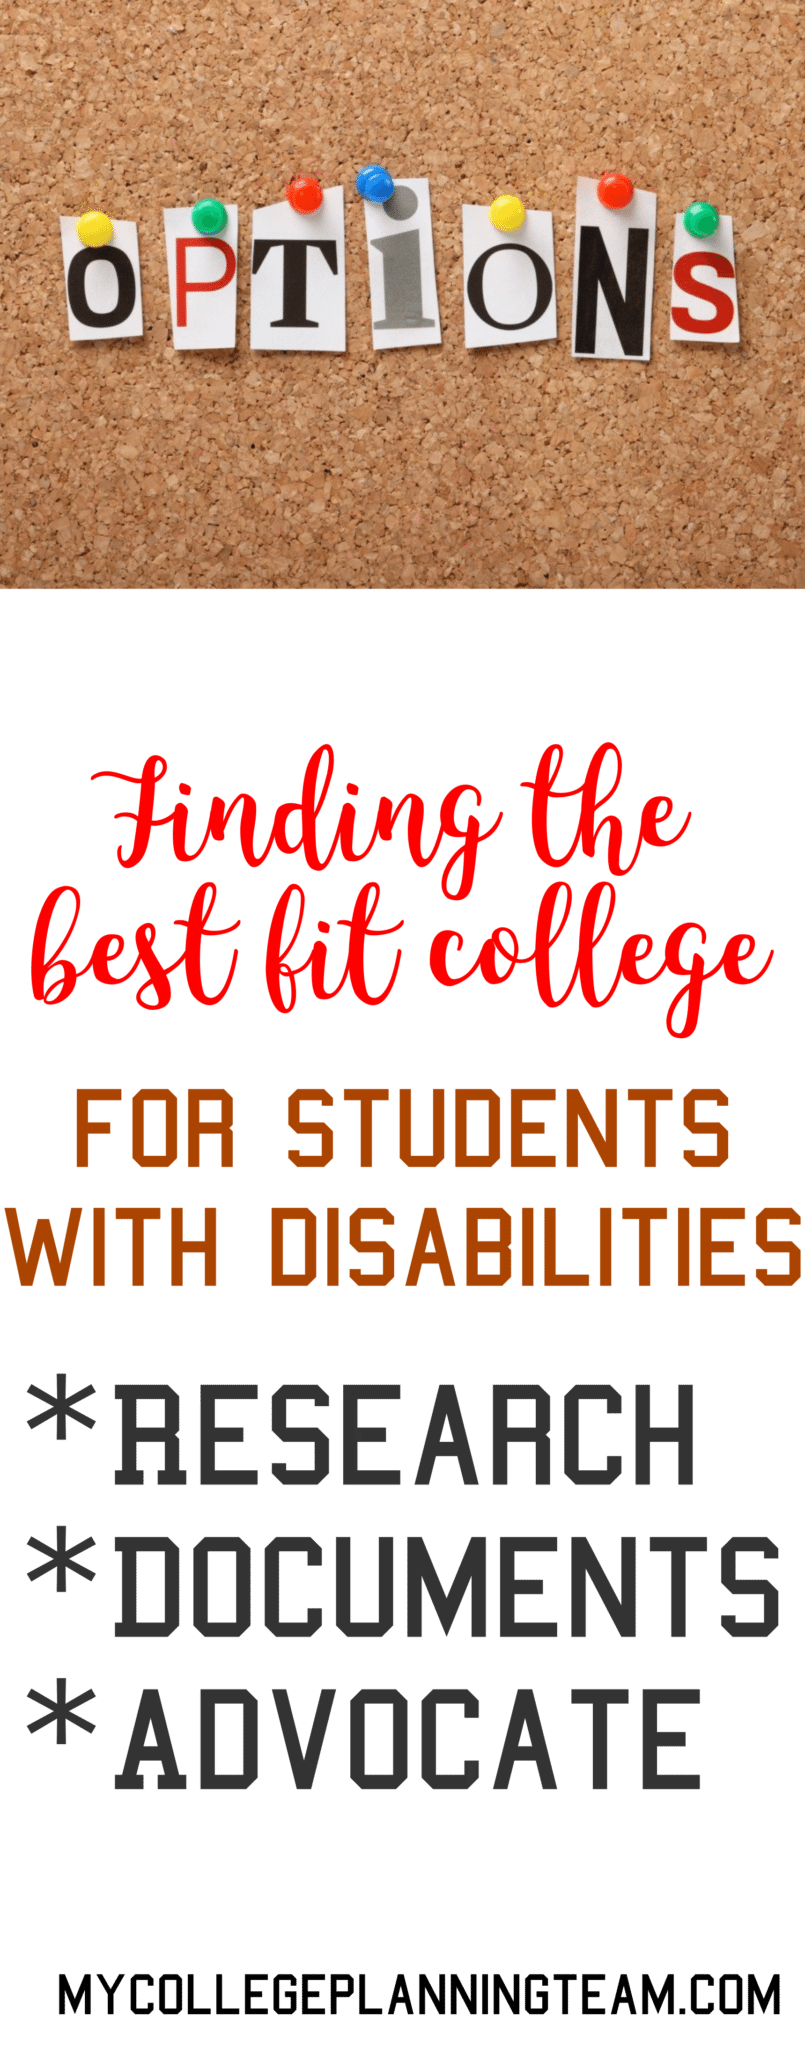 college for a student with disabilities